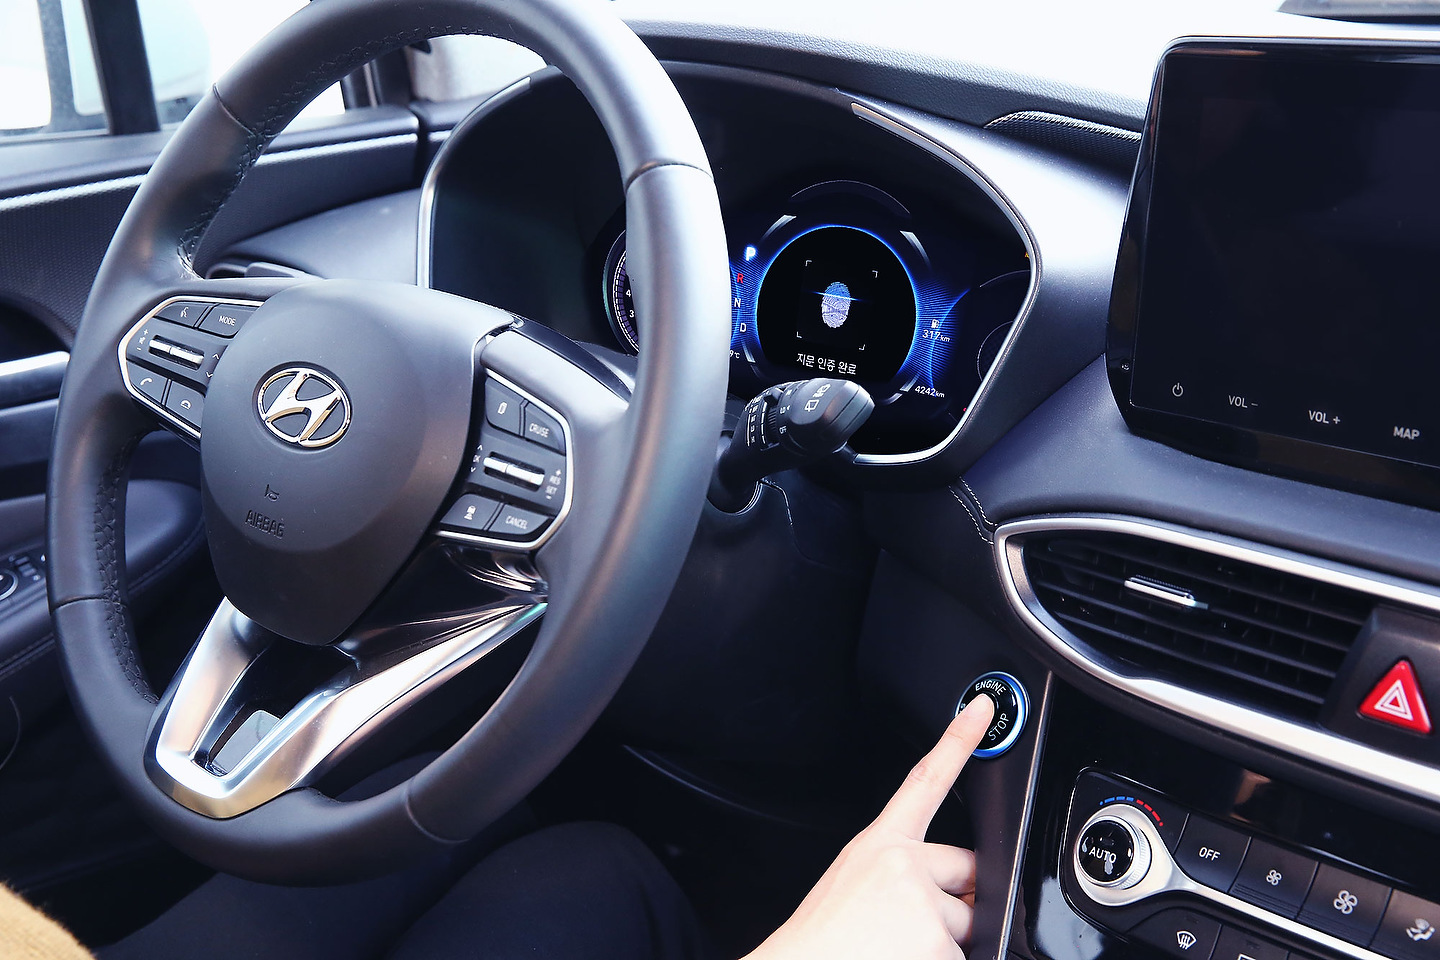 Hyundai Smart Fingerprint Technology